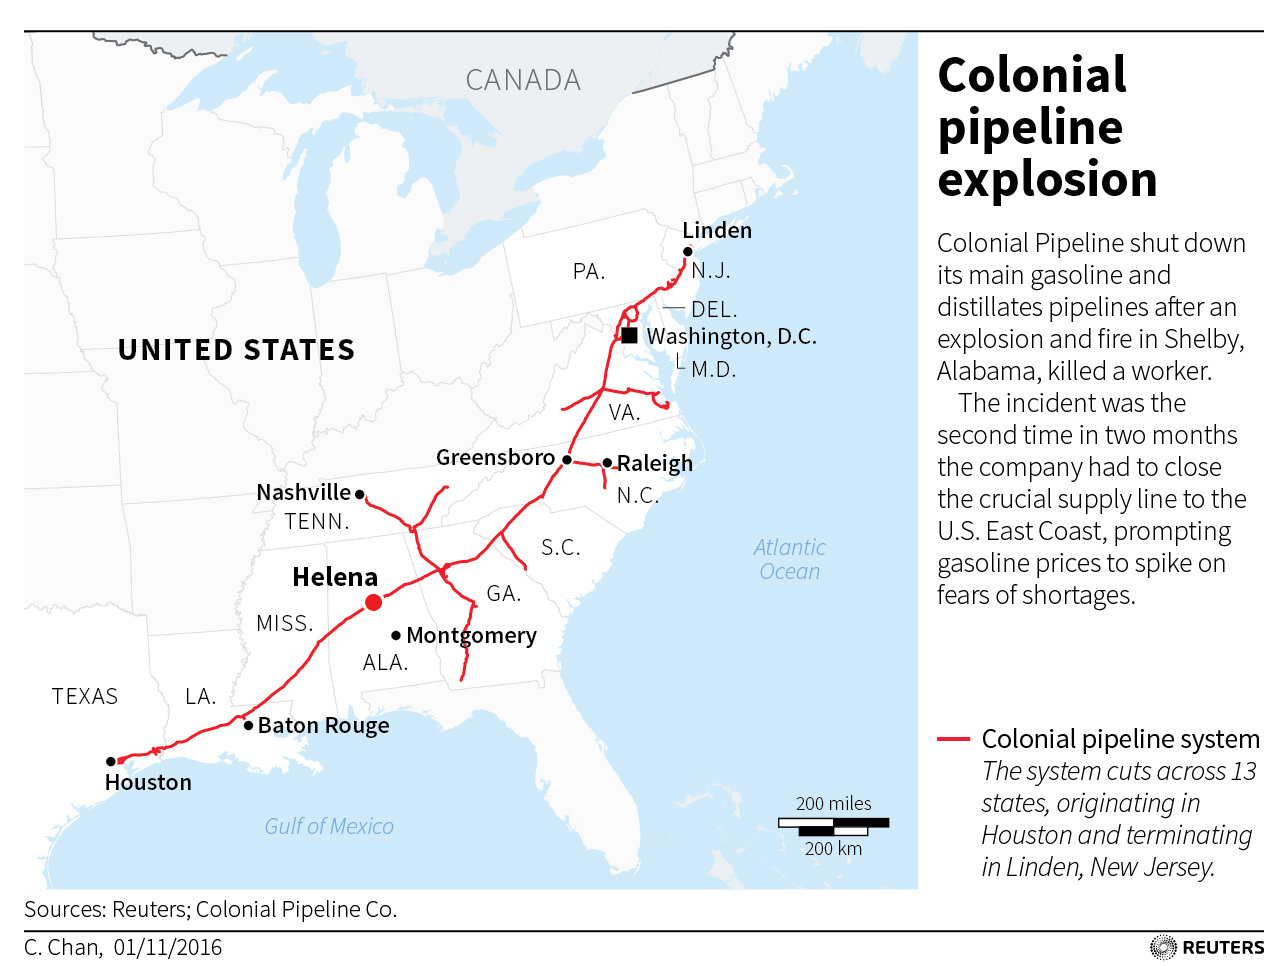 Map by Reuters and Colonial Pipeline